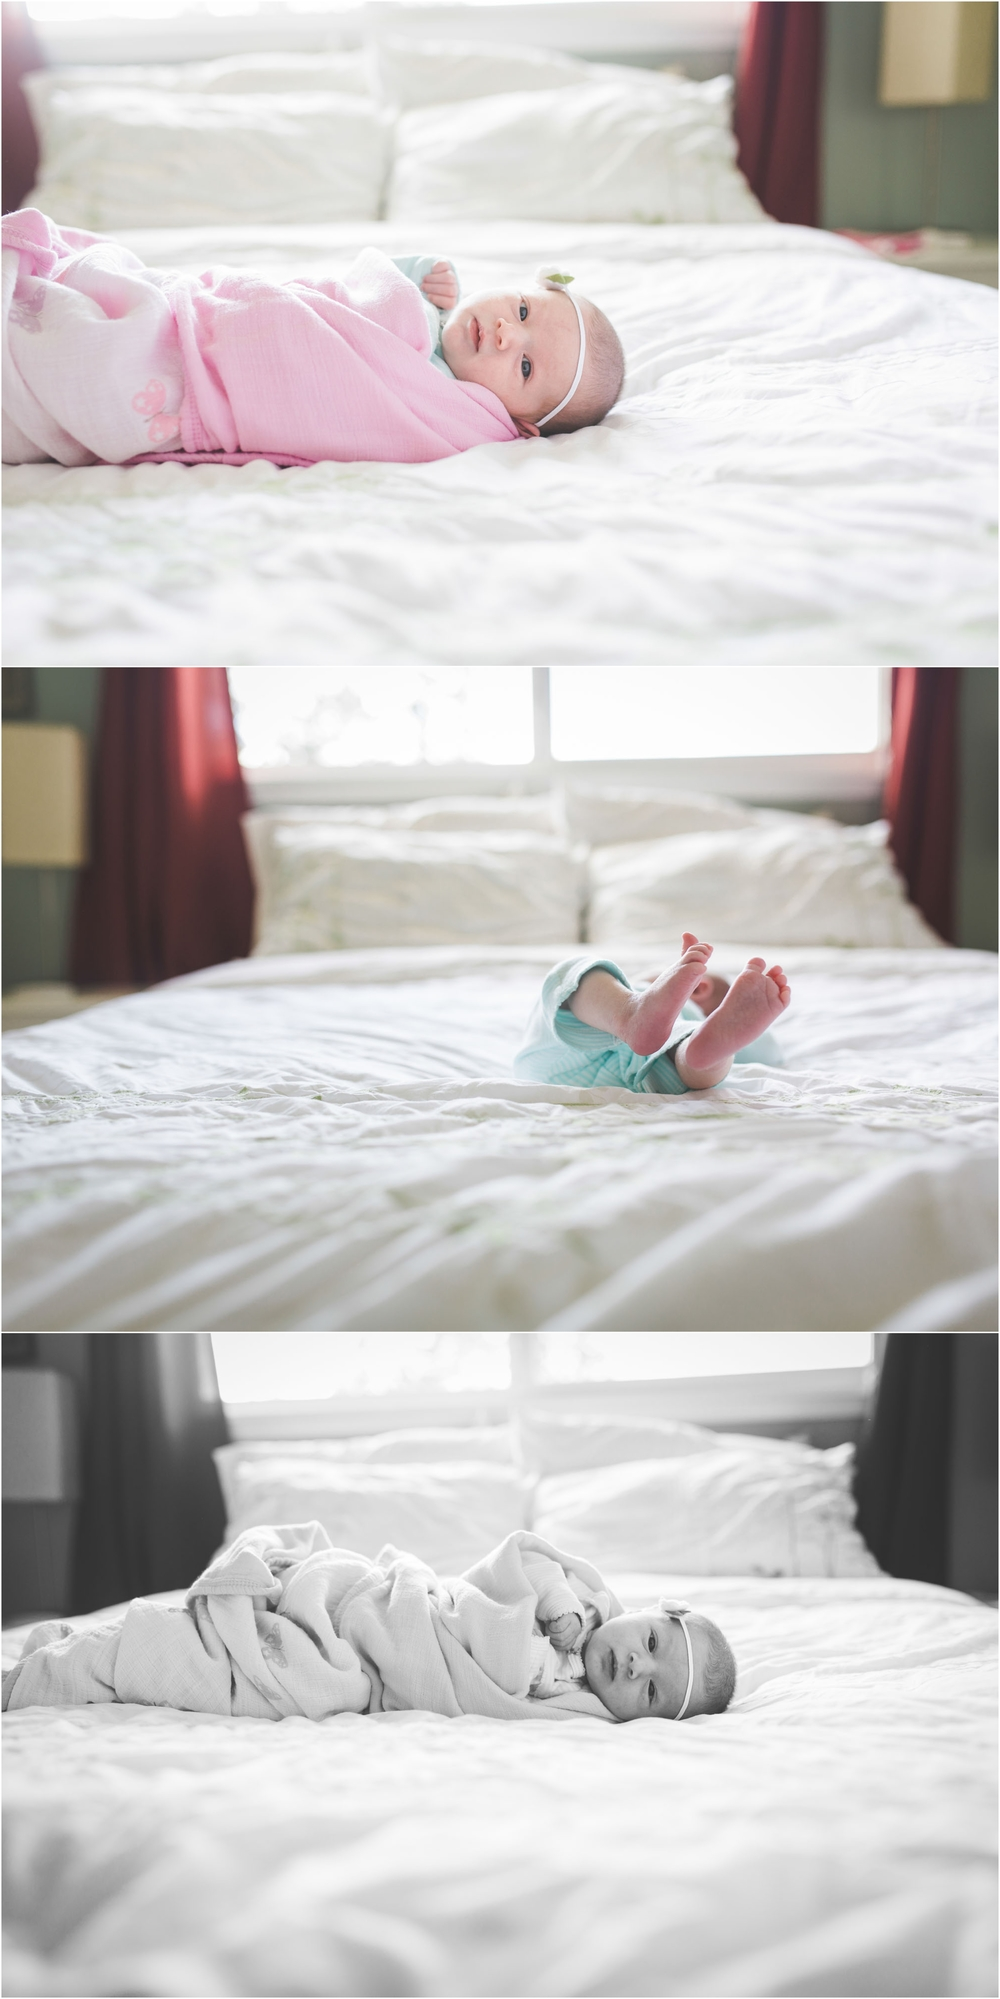 ashley vos photography seattle newborn photographer_0001.jpg